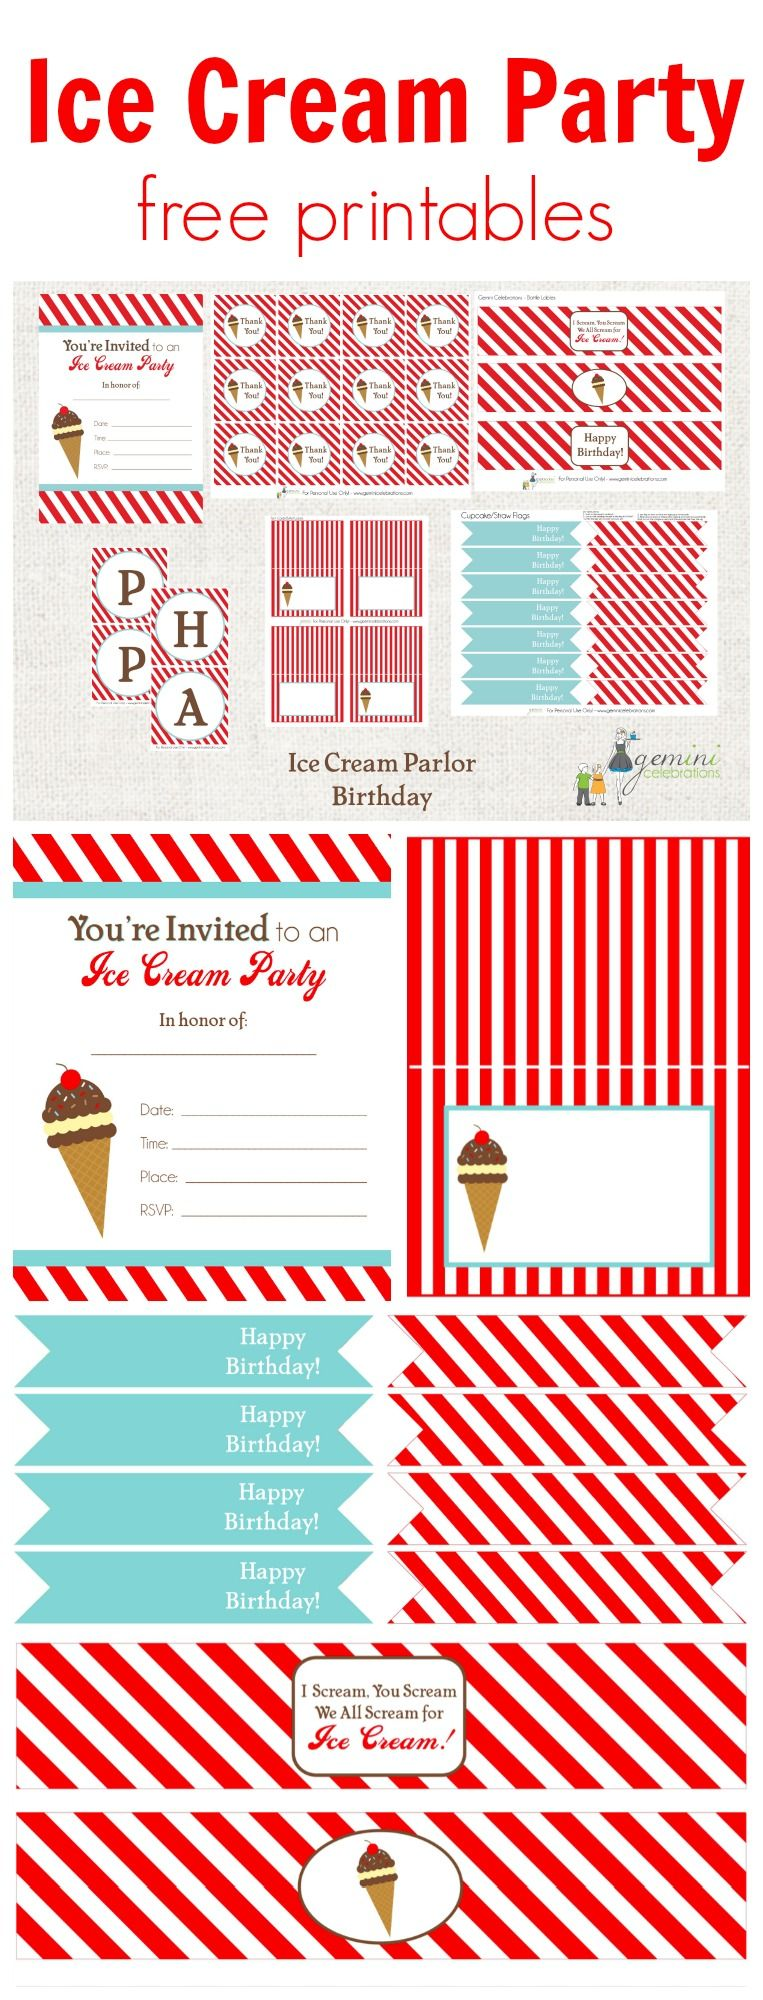 Mint Green and White Instant Download Boys/' Birthday Parties Ice Cream Parlor Party Printable Backdrop Template A0 Size